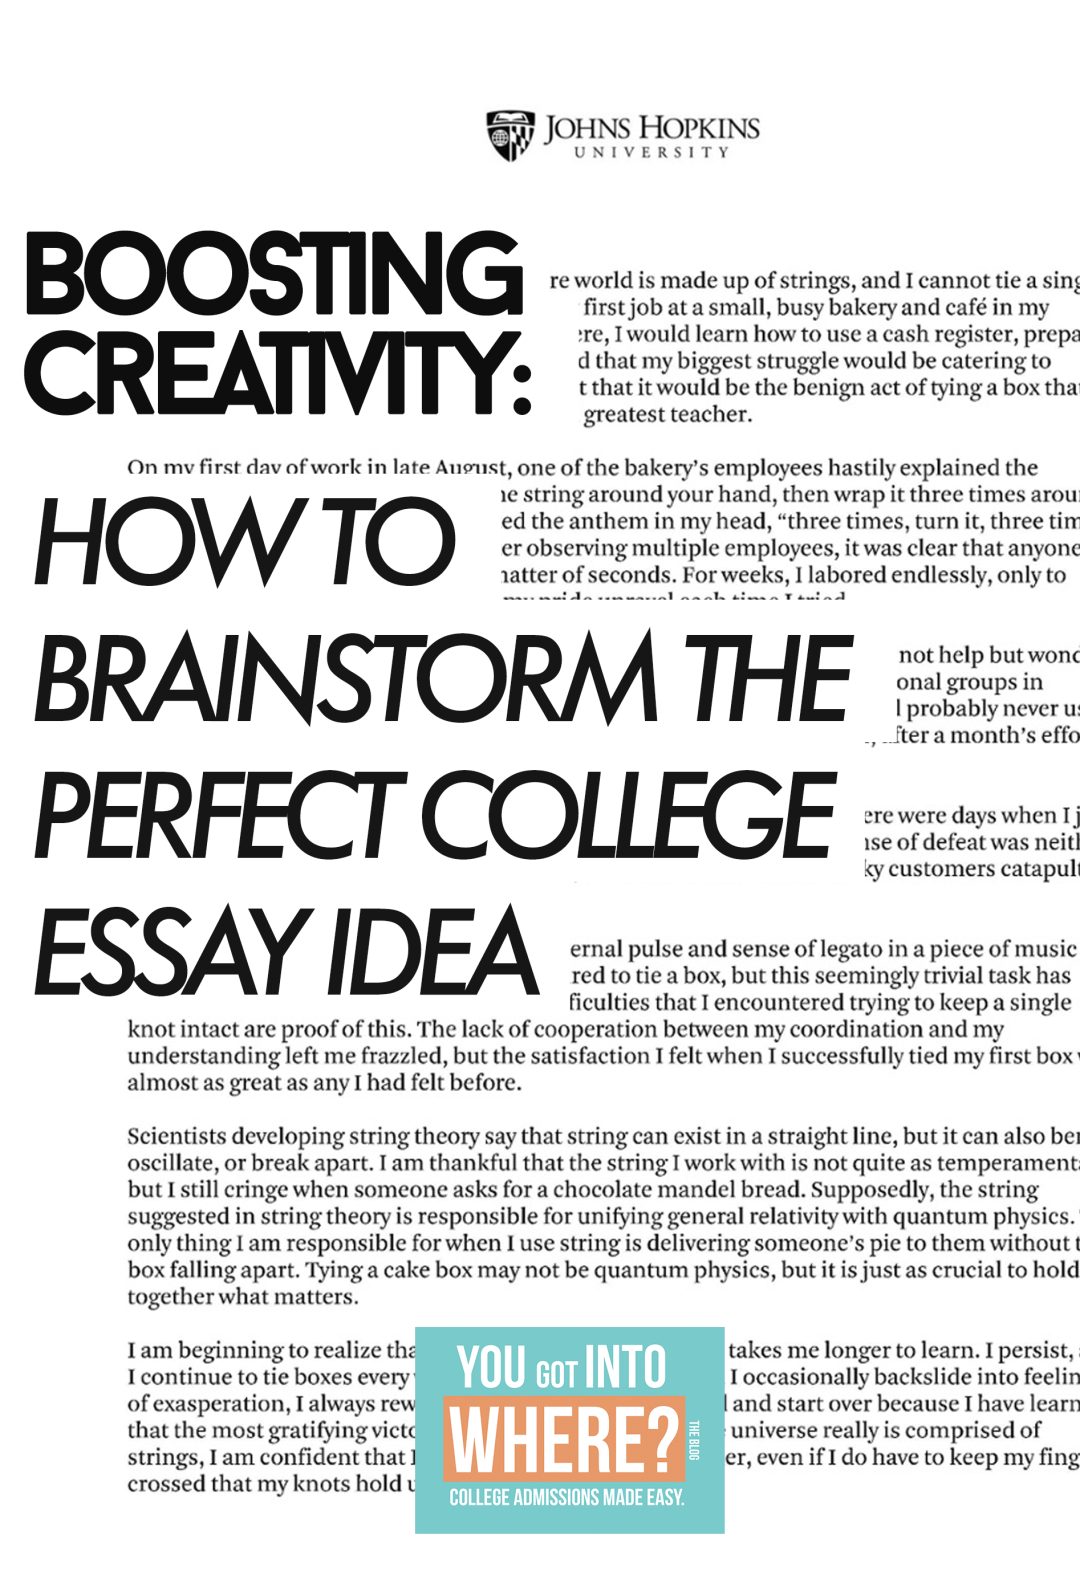 essays supplements you got into where 5 effective steps to brainstorm the perfect college essay